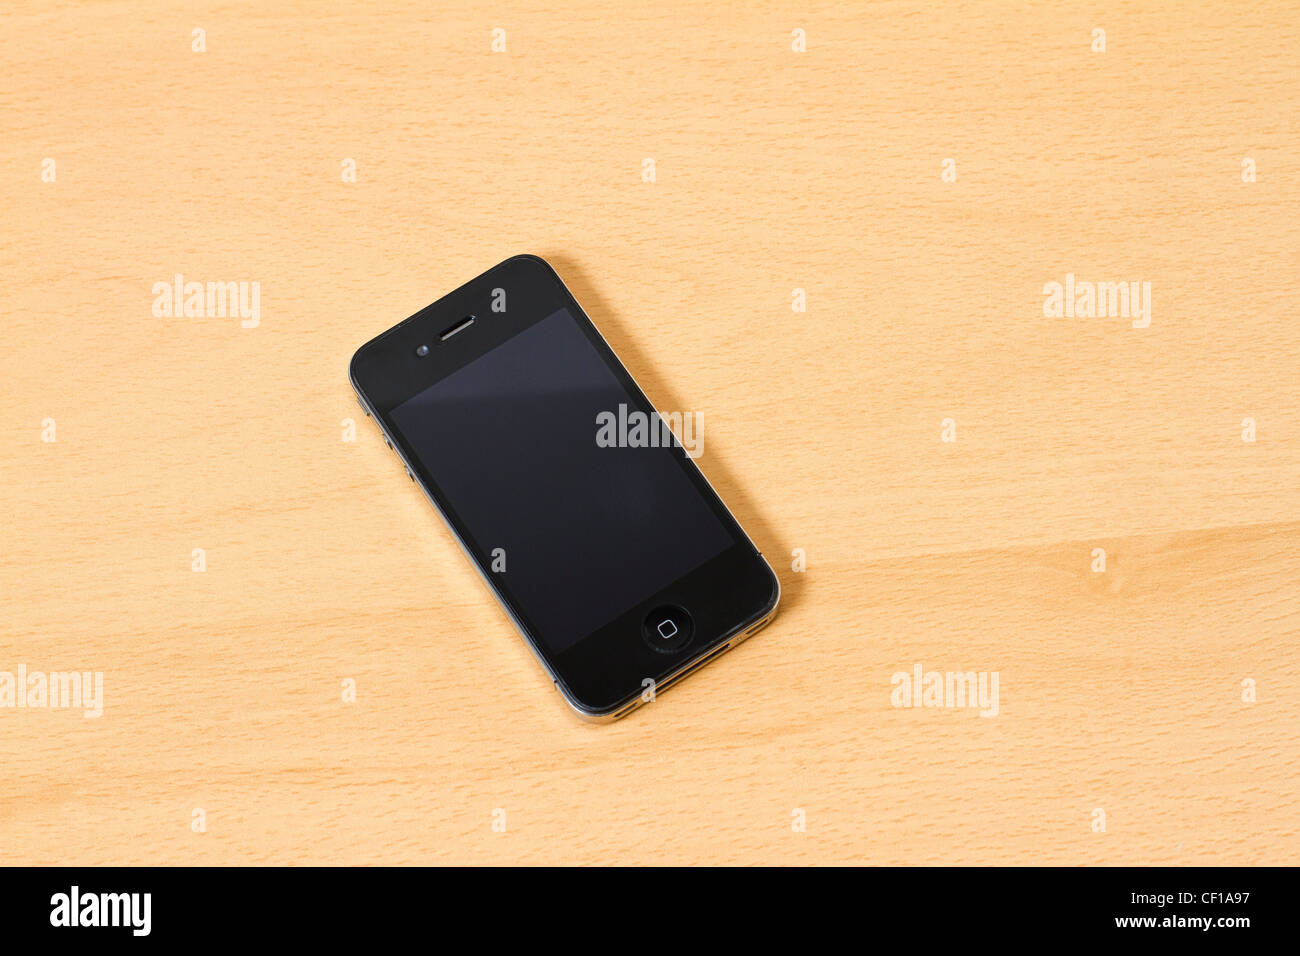 Turned Off Apple Iphone4 4s On A Wooden Table Background Stock Photo